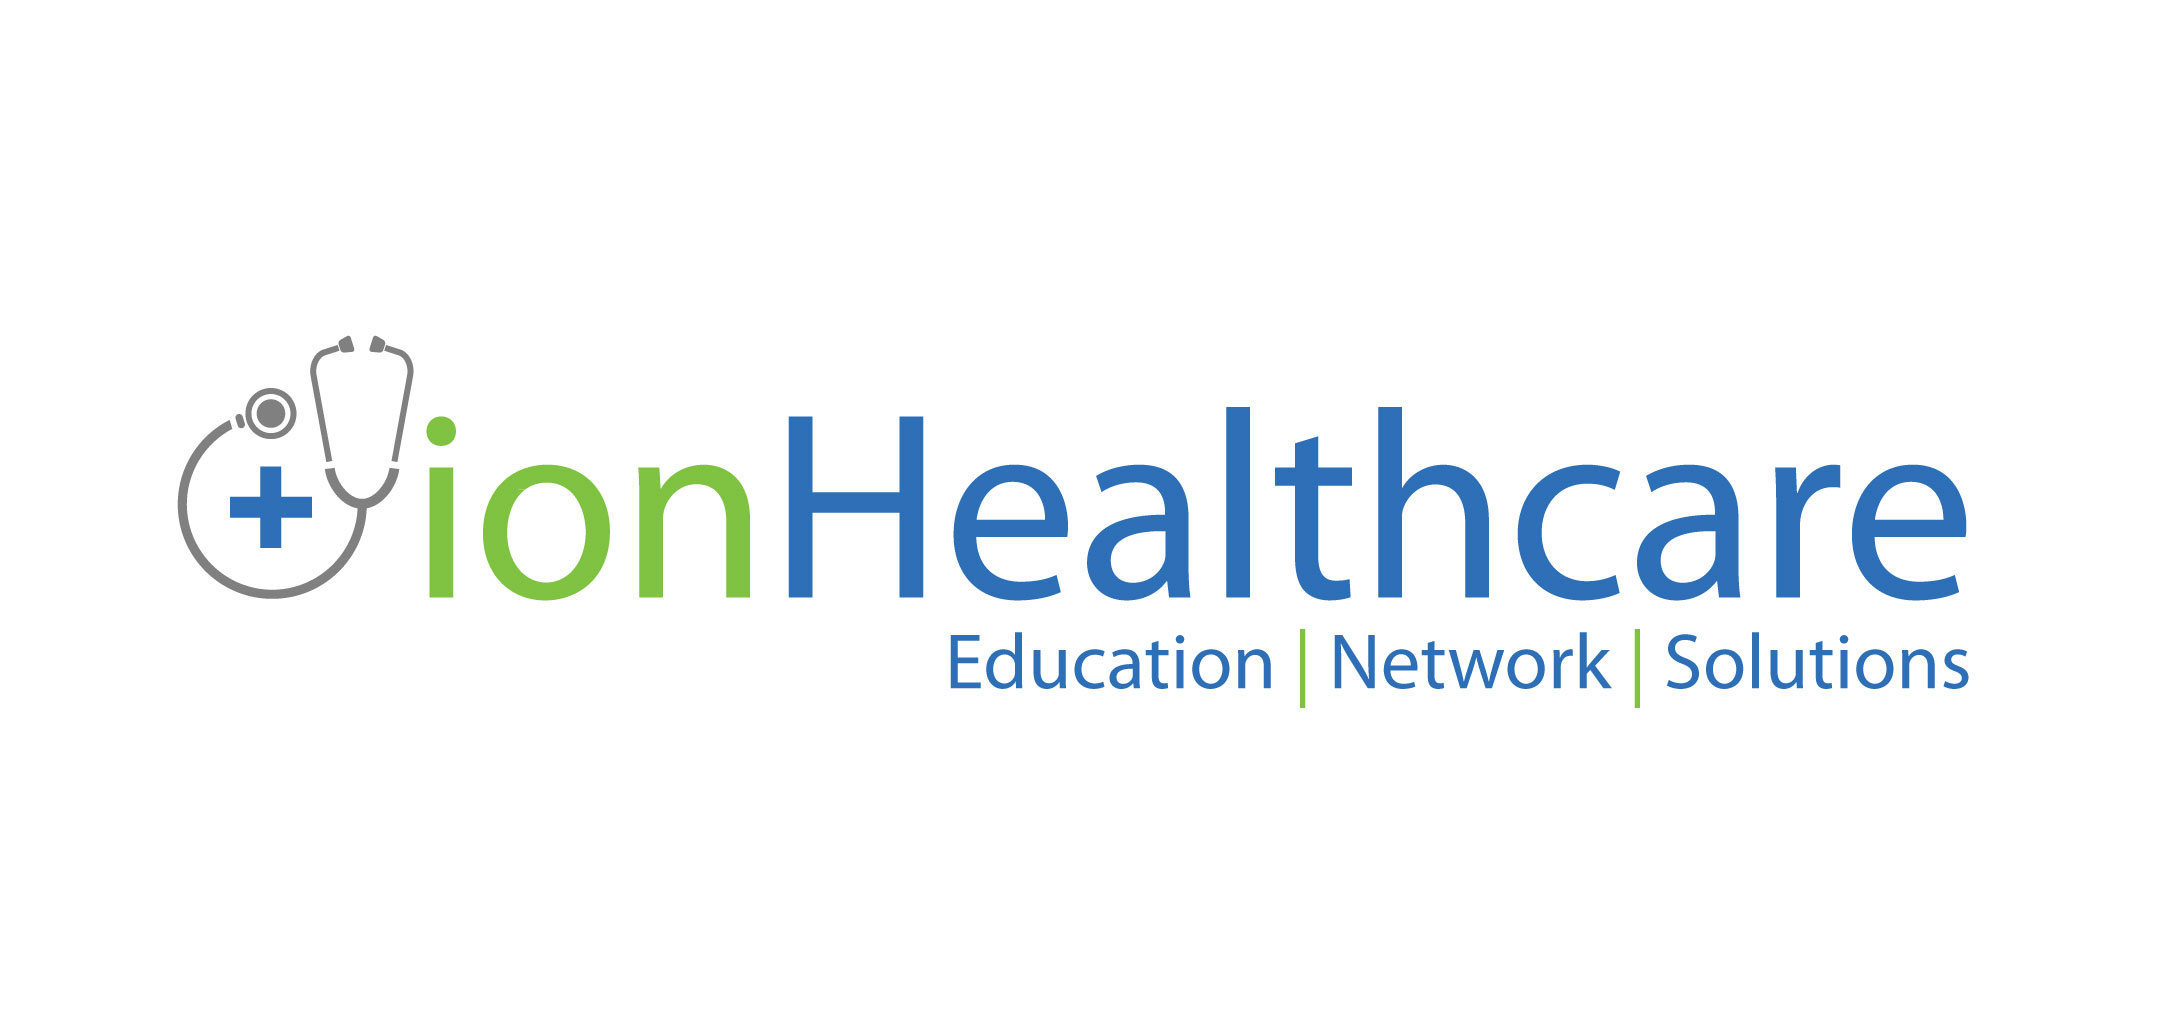 ionHealthcare